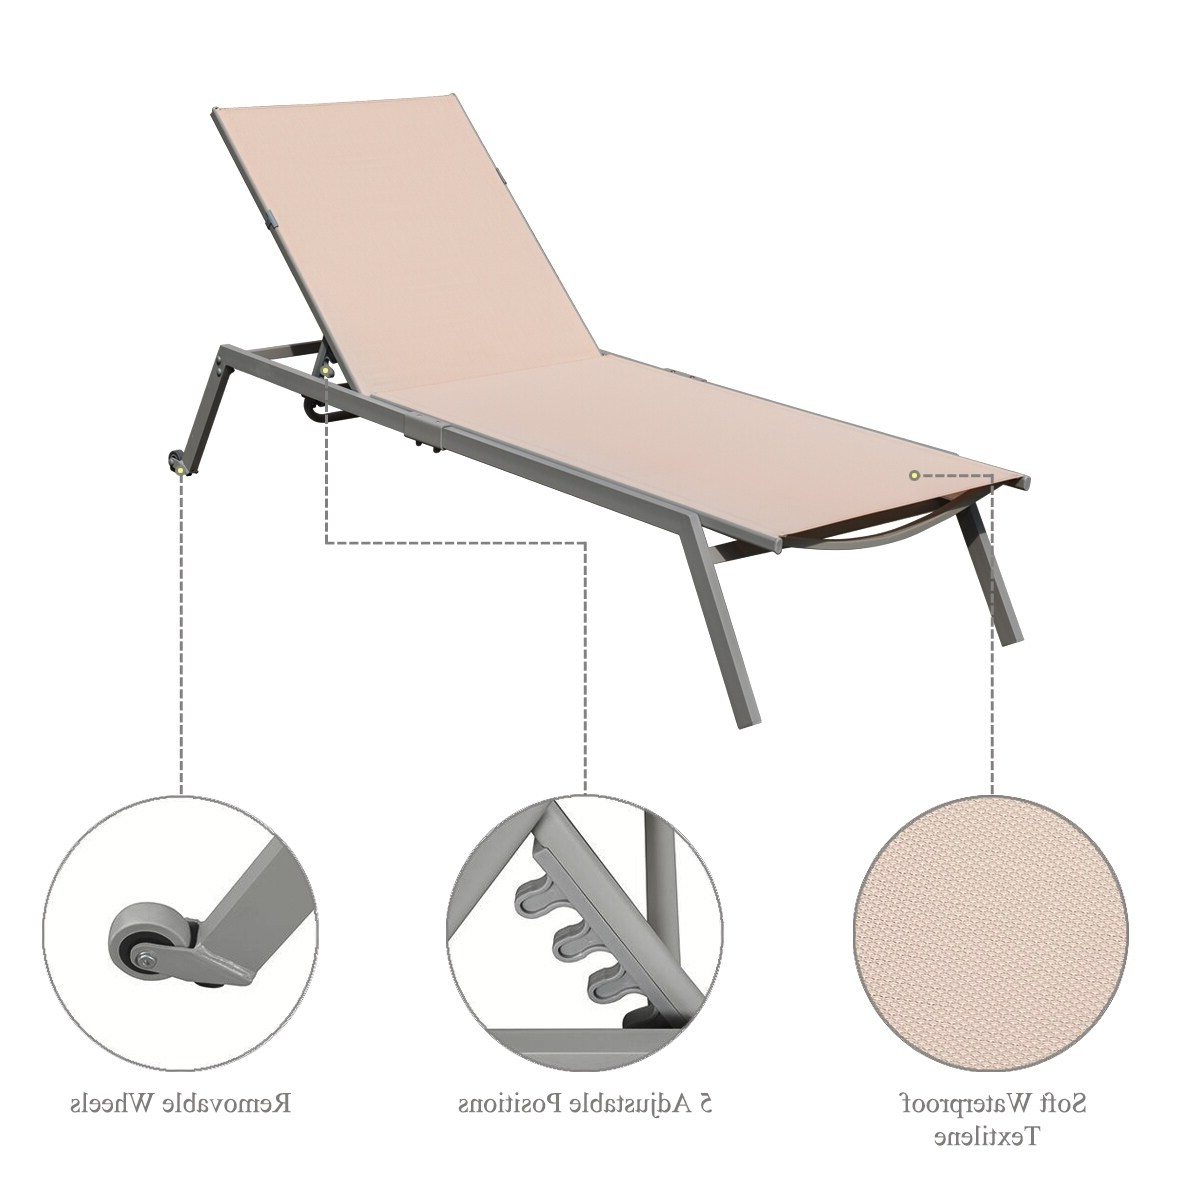 Well Known Corvus Torino Adjustable Sling Fabric Patio Chaise Lounge Throughout Adjustable Sling Fabric Patio Chaise Lounges (View 21 of 25)